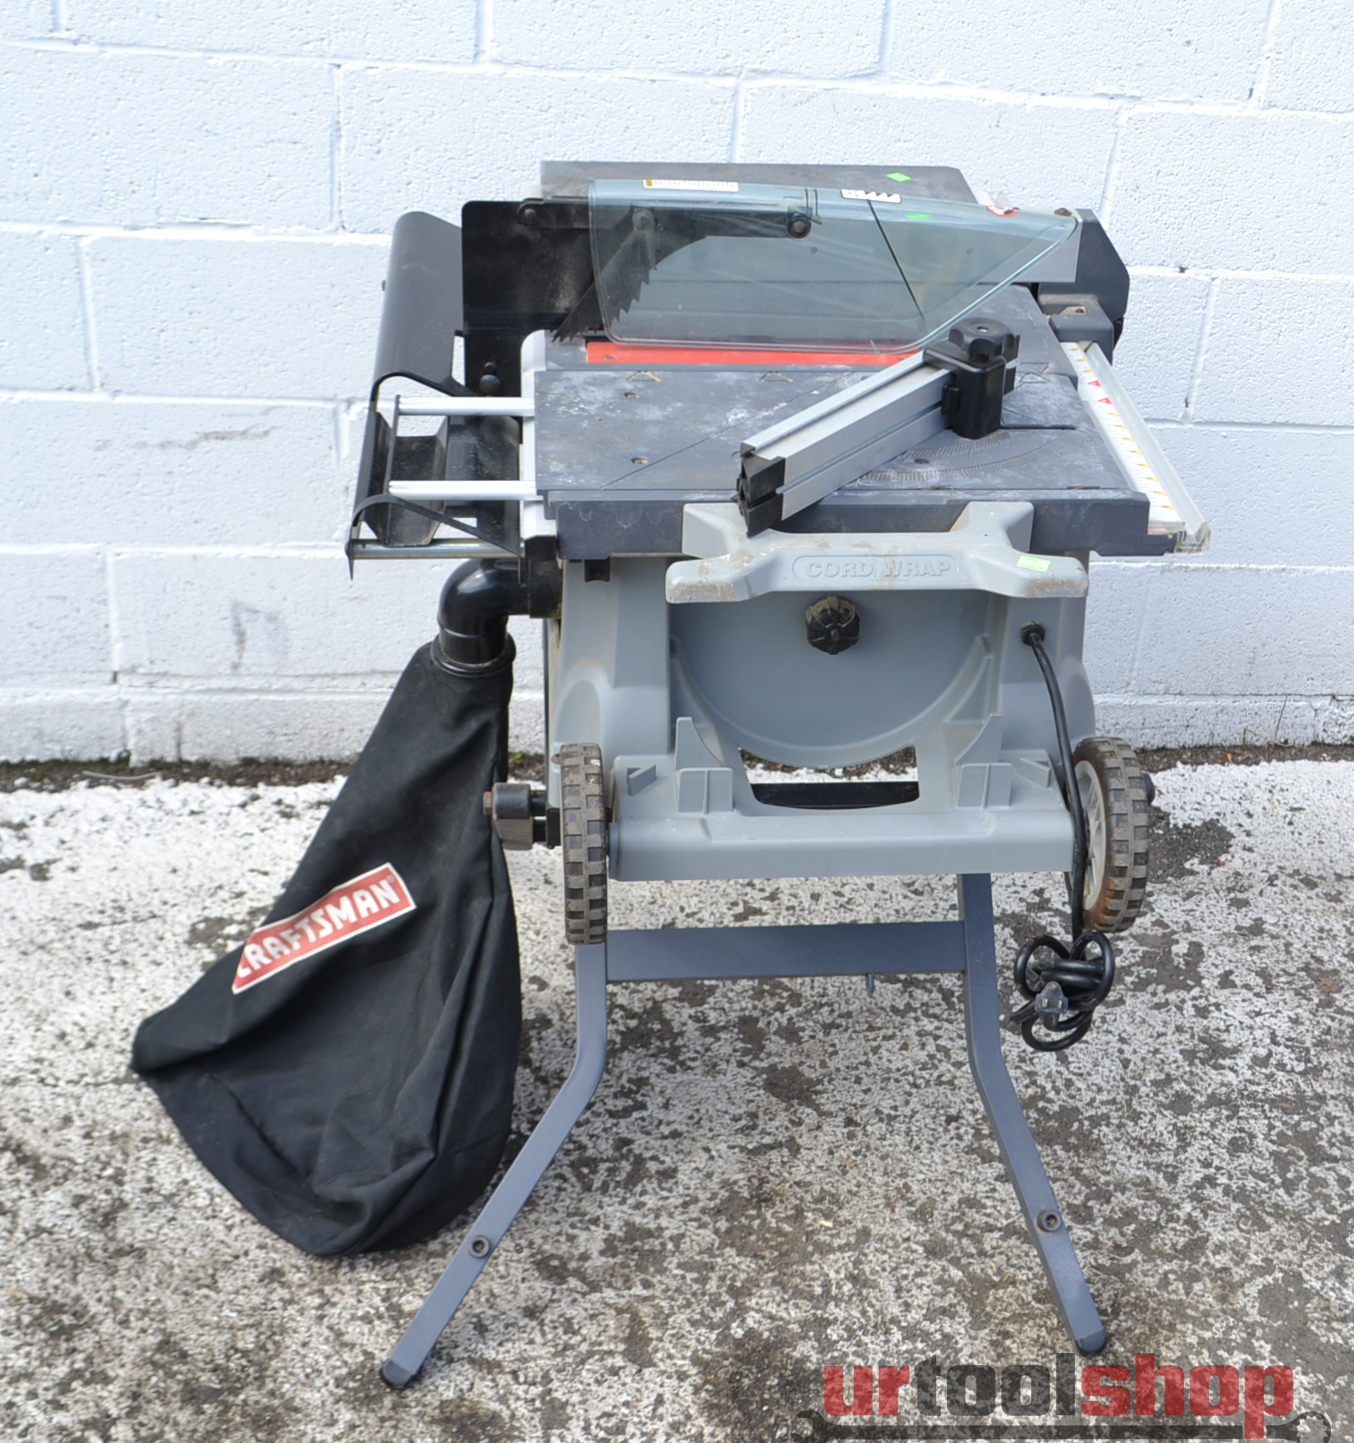 Craftsman 10 inch portable table saw model for 10 inch table saw craftsman